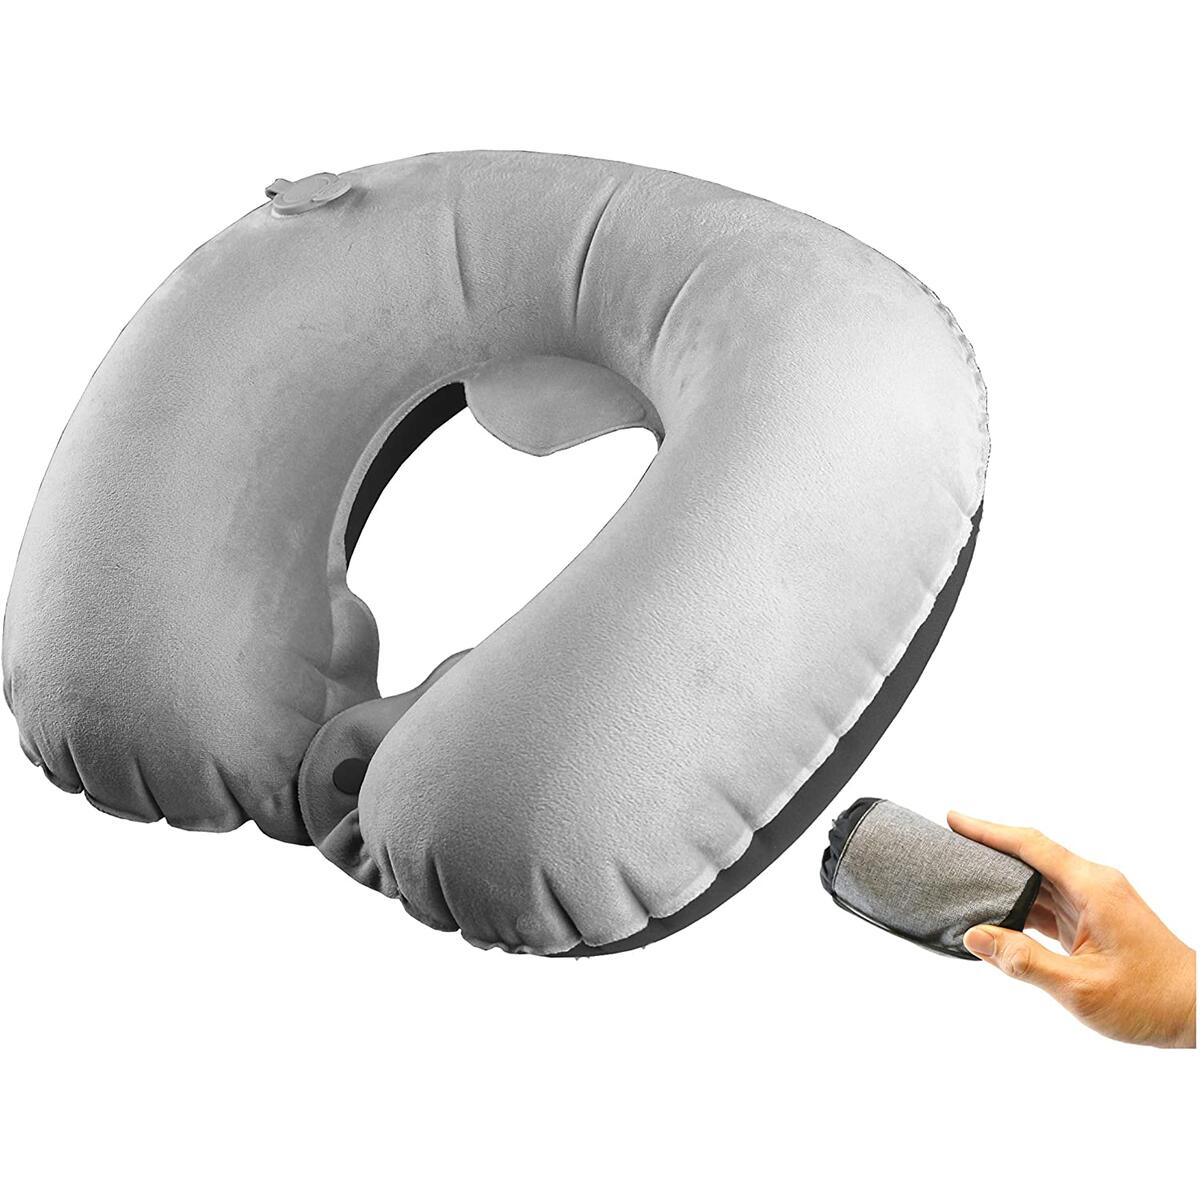 Inflatable Neck Pillow (Black Only)